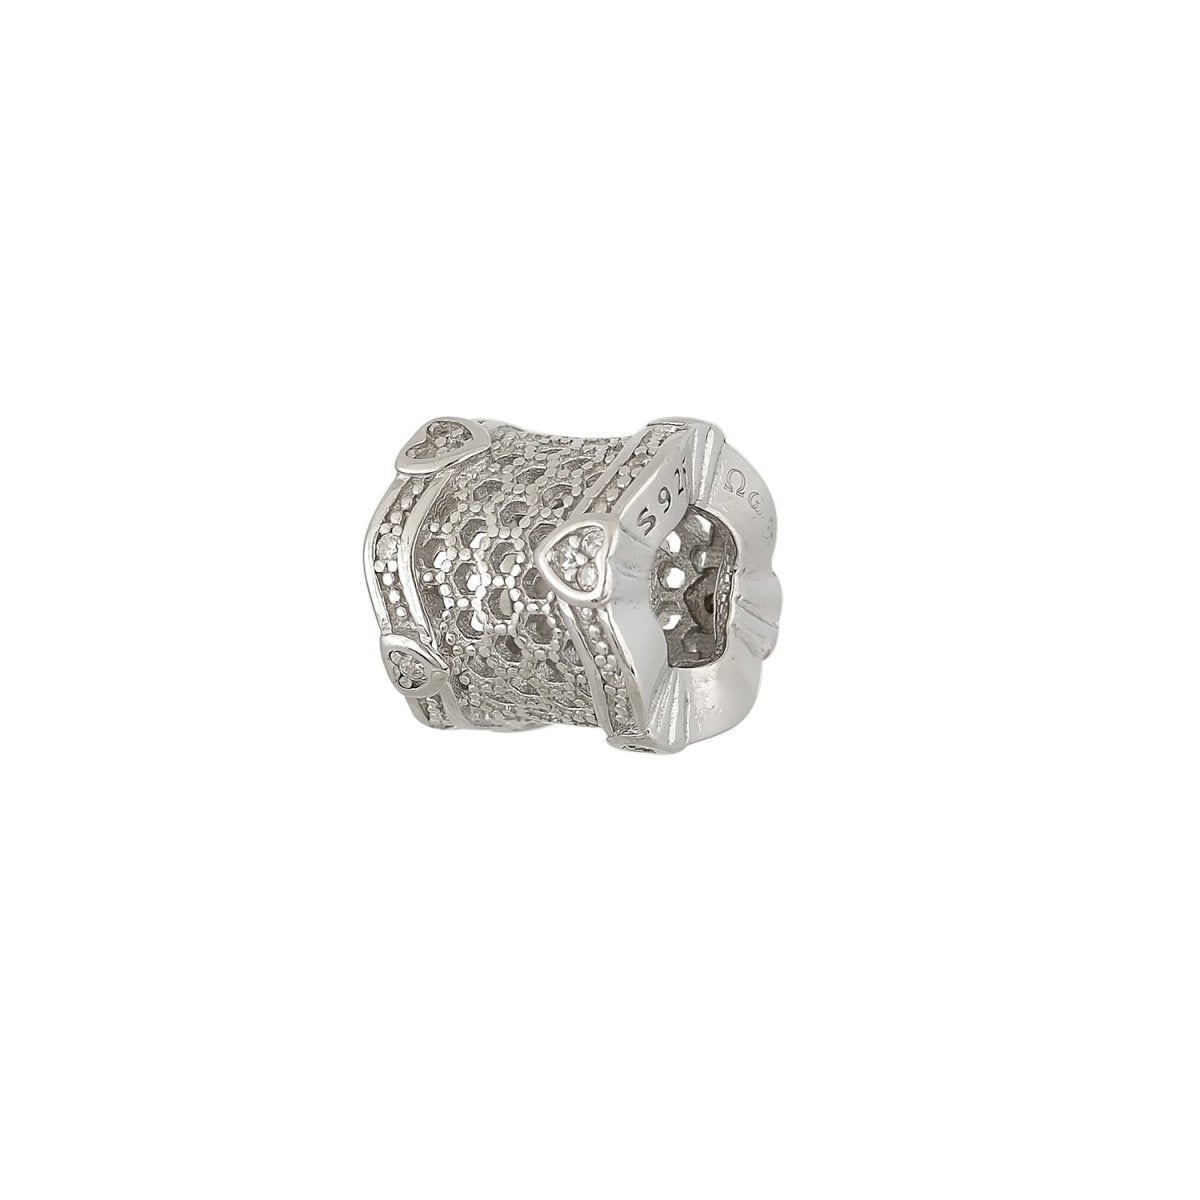 Pattern for Bracelet D108W Platinum Plating - Goldy Jewelry Store